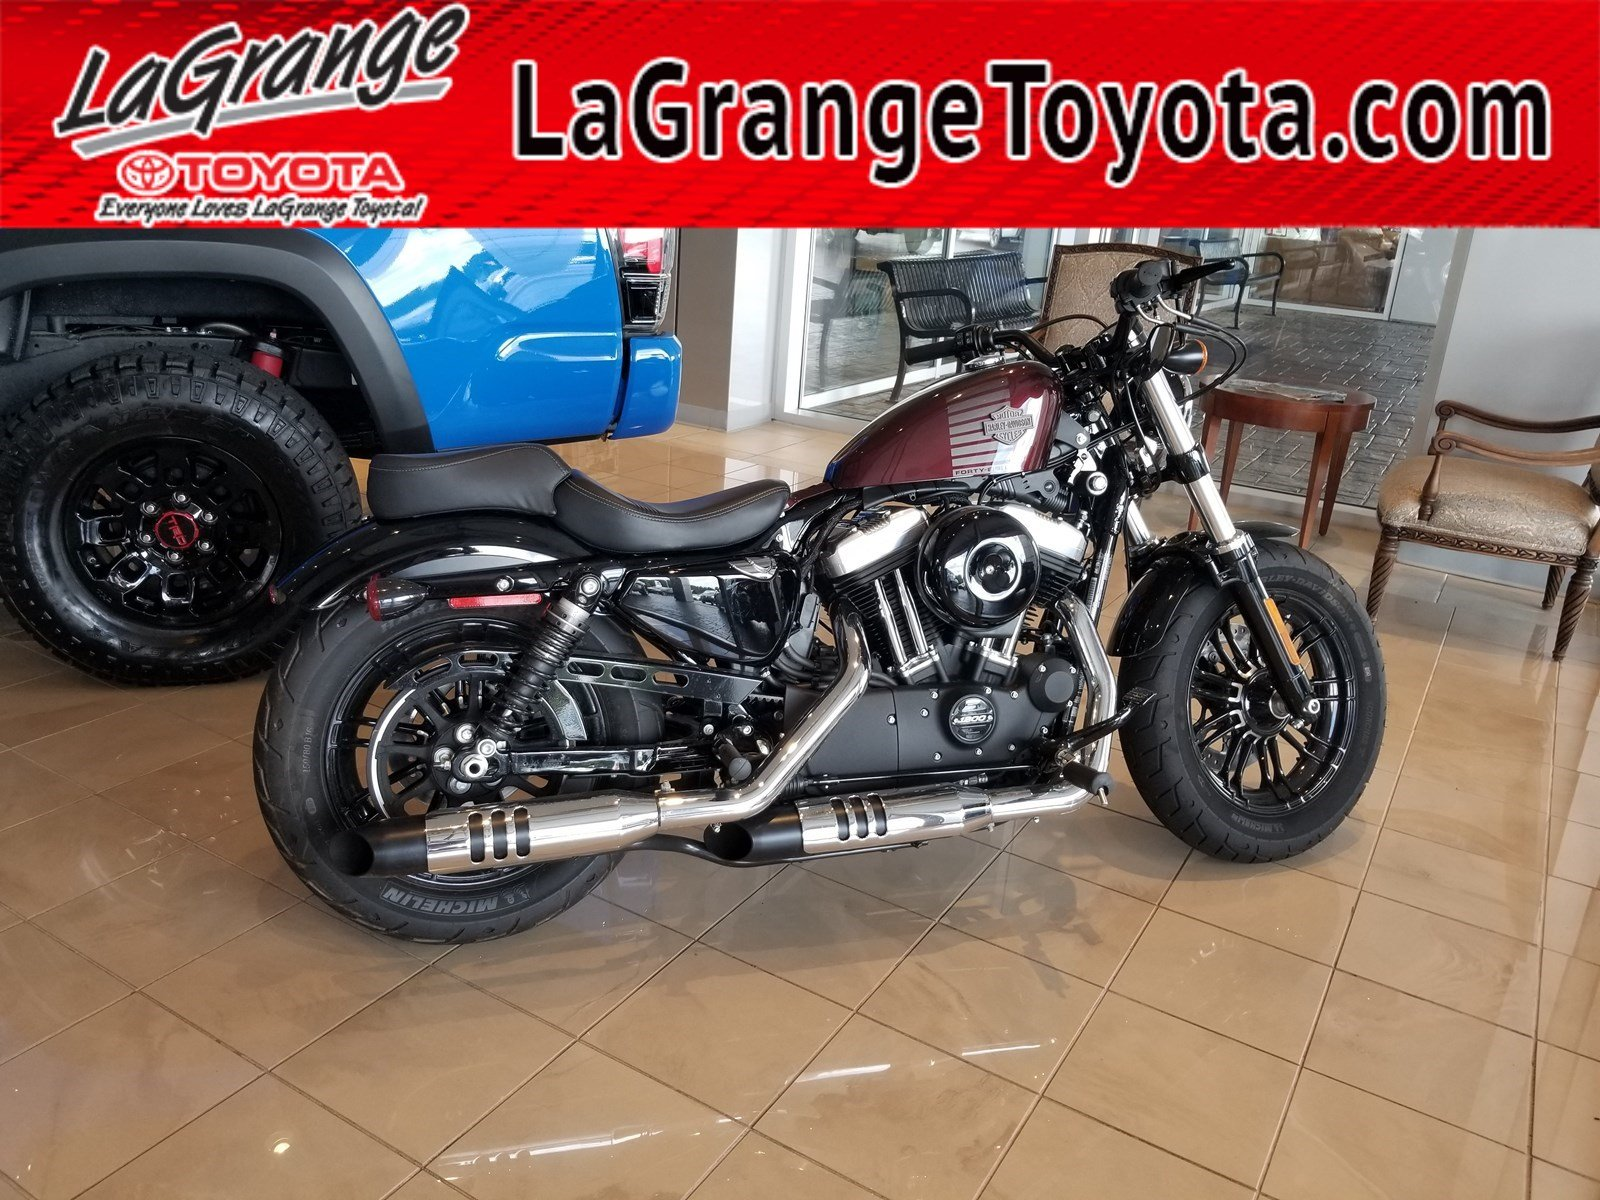 Pre-Owned 2018 Harley Davidson XL Forty-Eight